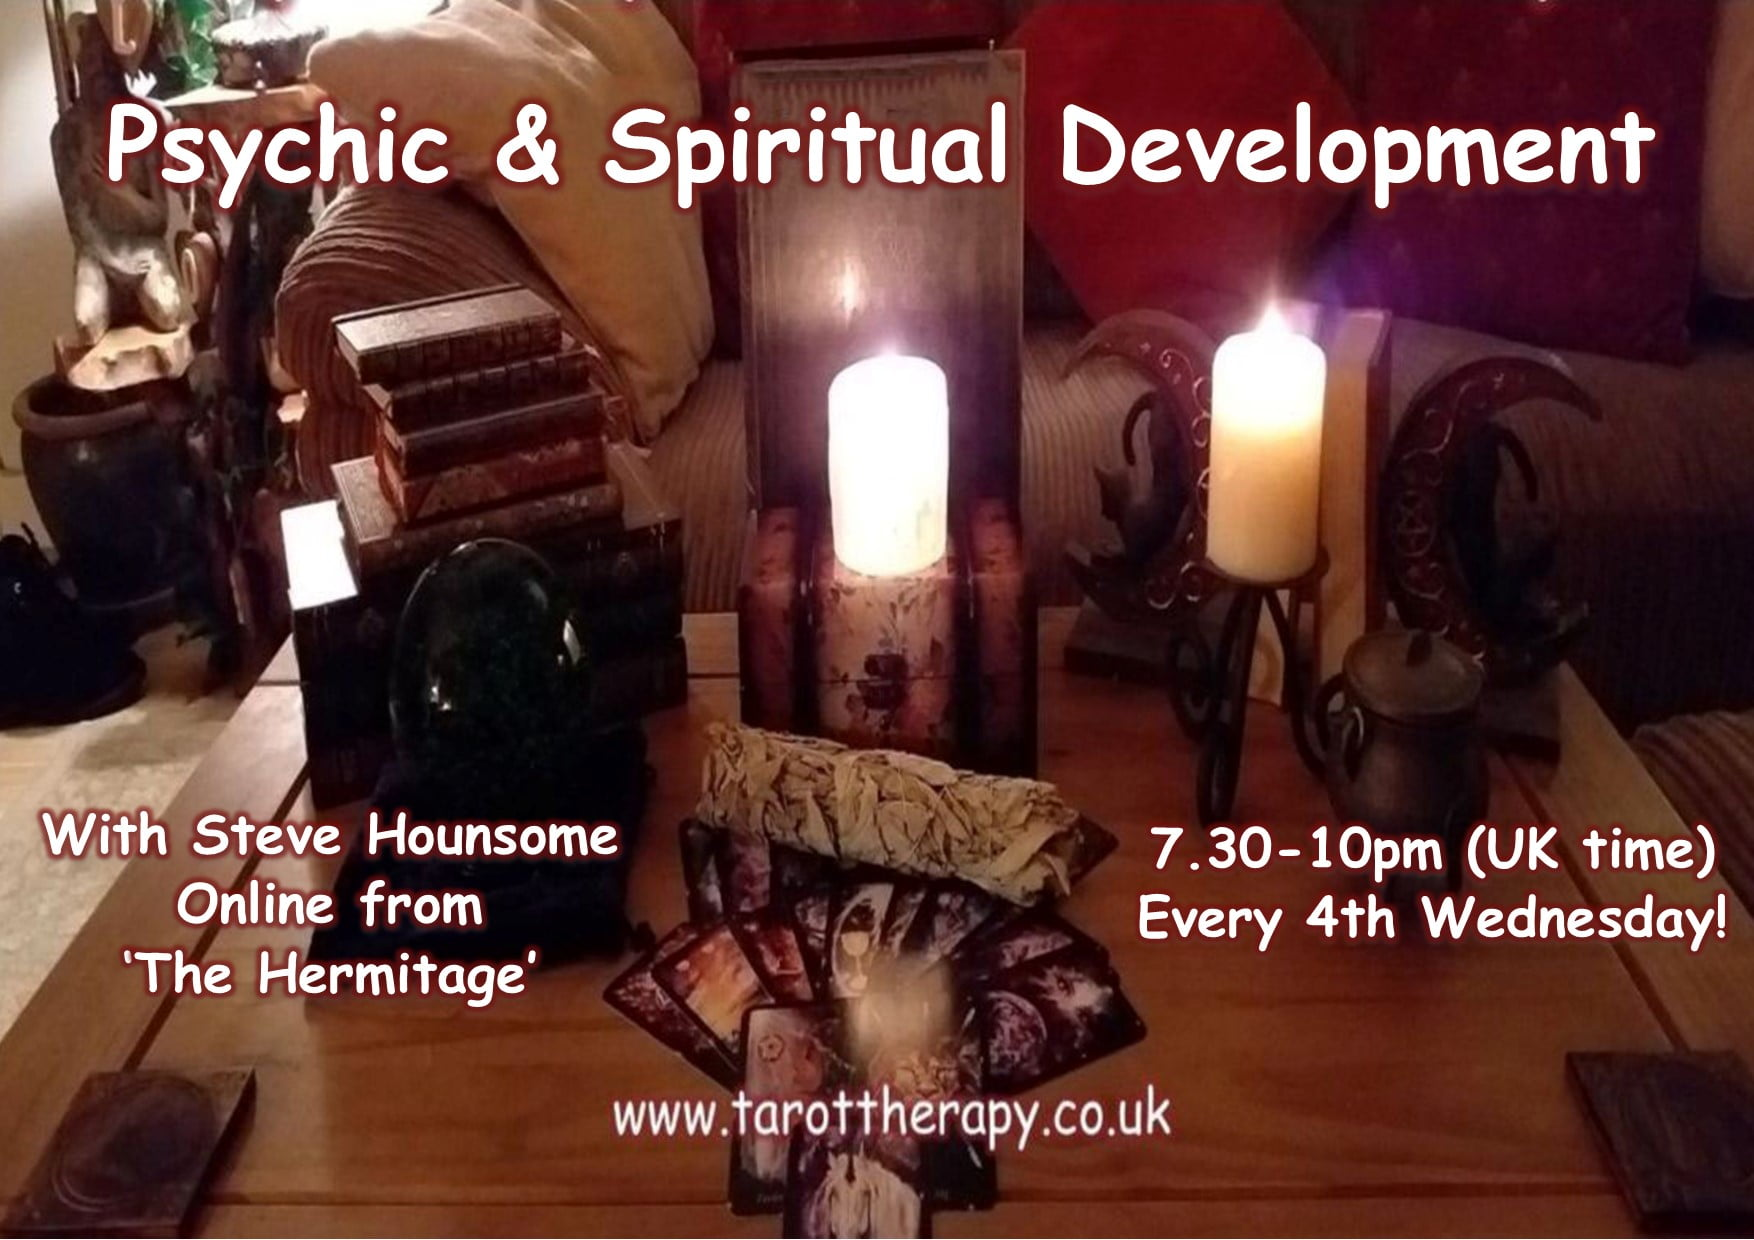 Online Psychic & Spiritual Development Group with Steve Hounsome